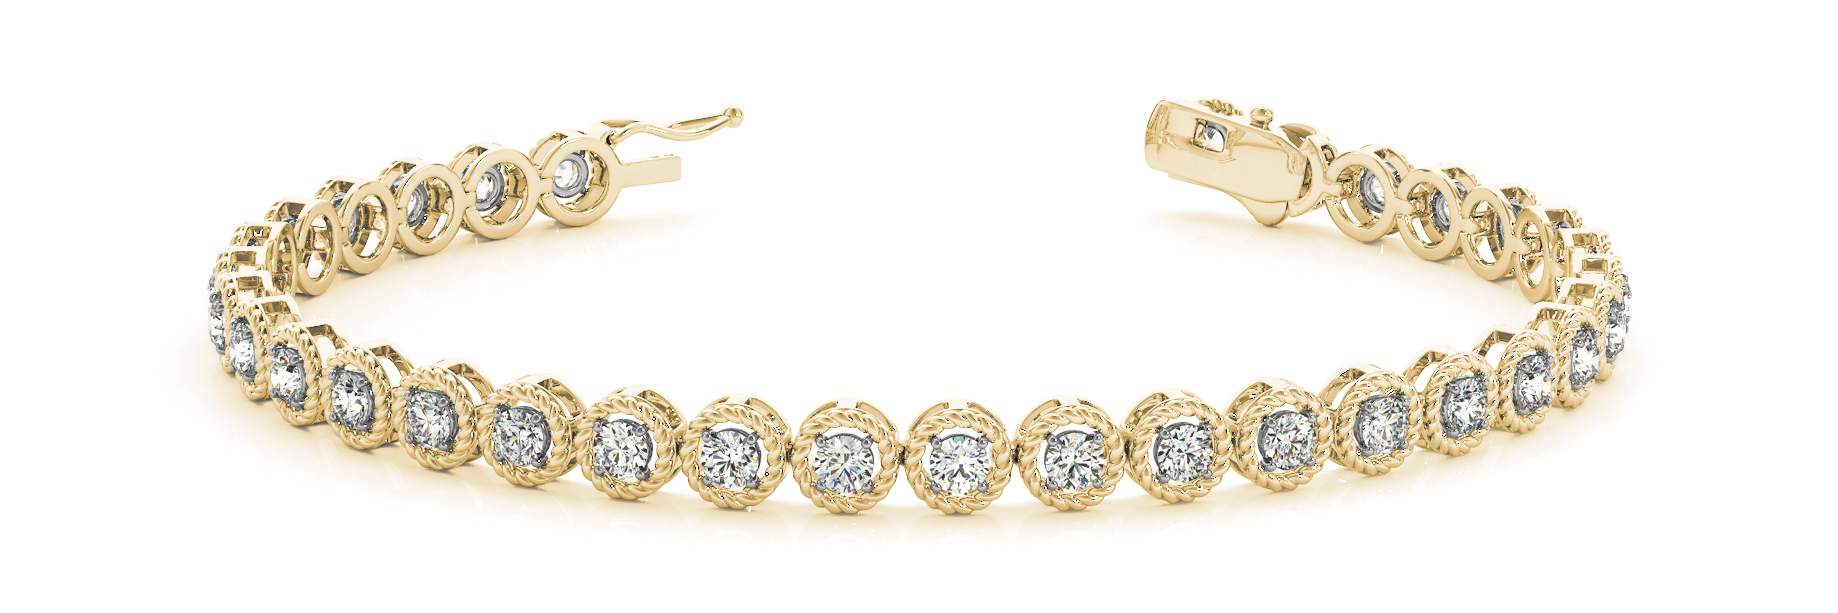 1.98 Carat Round Diamond Rope Bracelet Yellow Gold